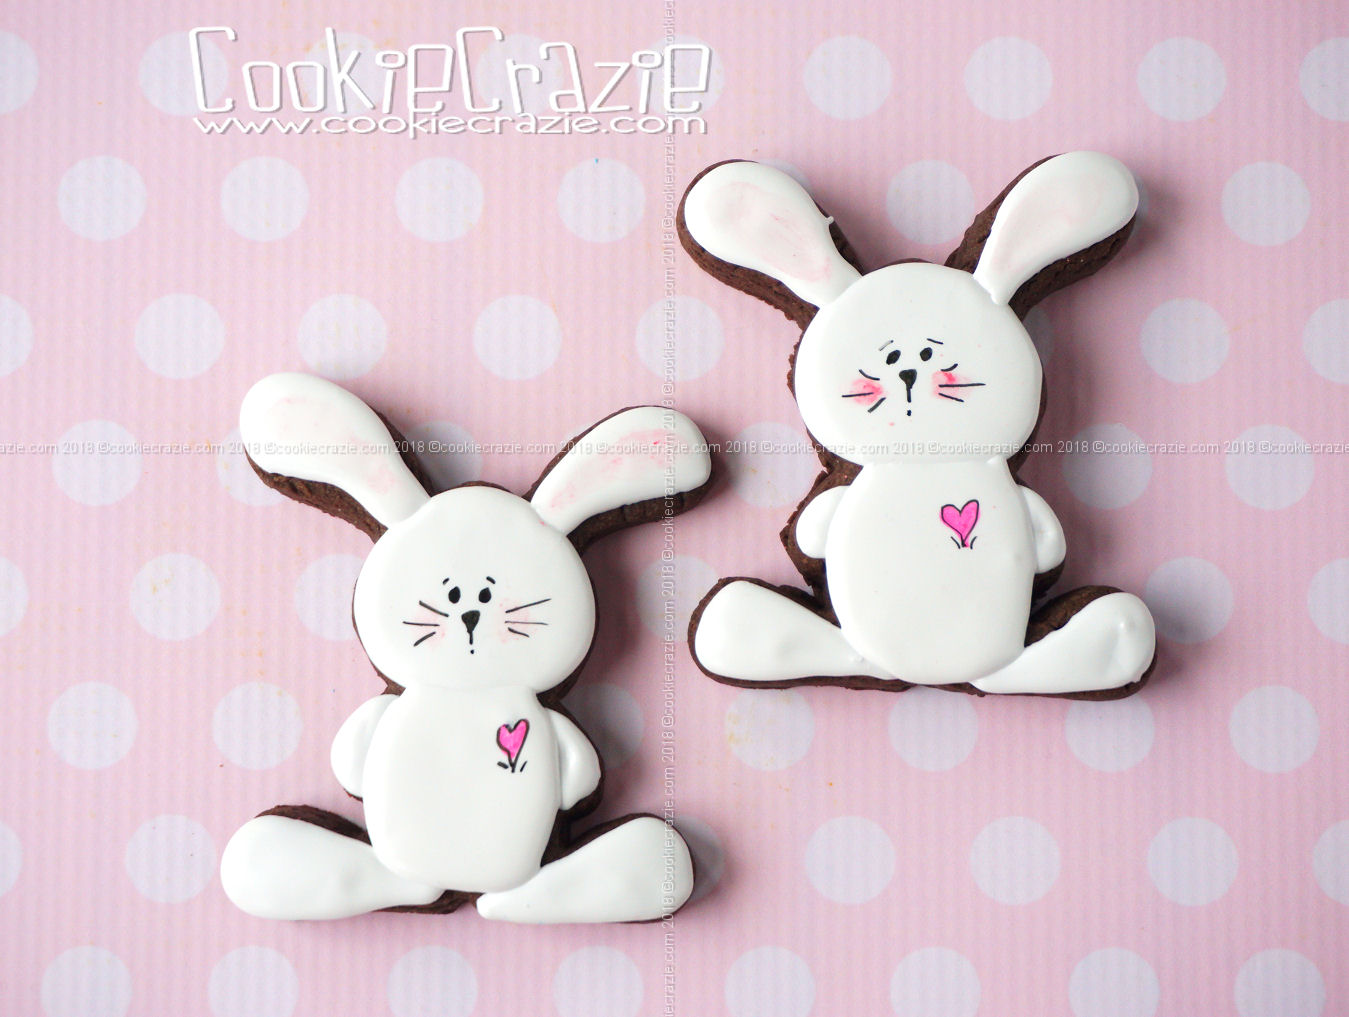 Floppy Bunny Decorated Sugar Cookie YouTube video  HERE  Bunny cutter found  HERE